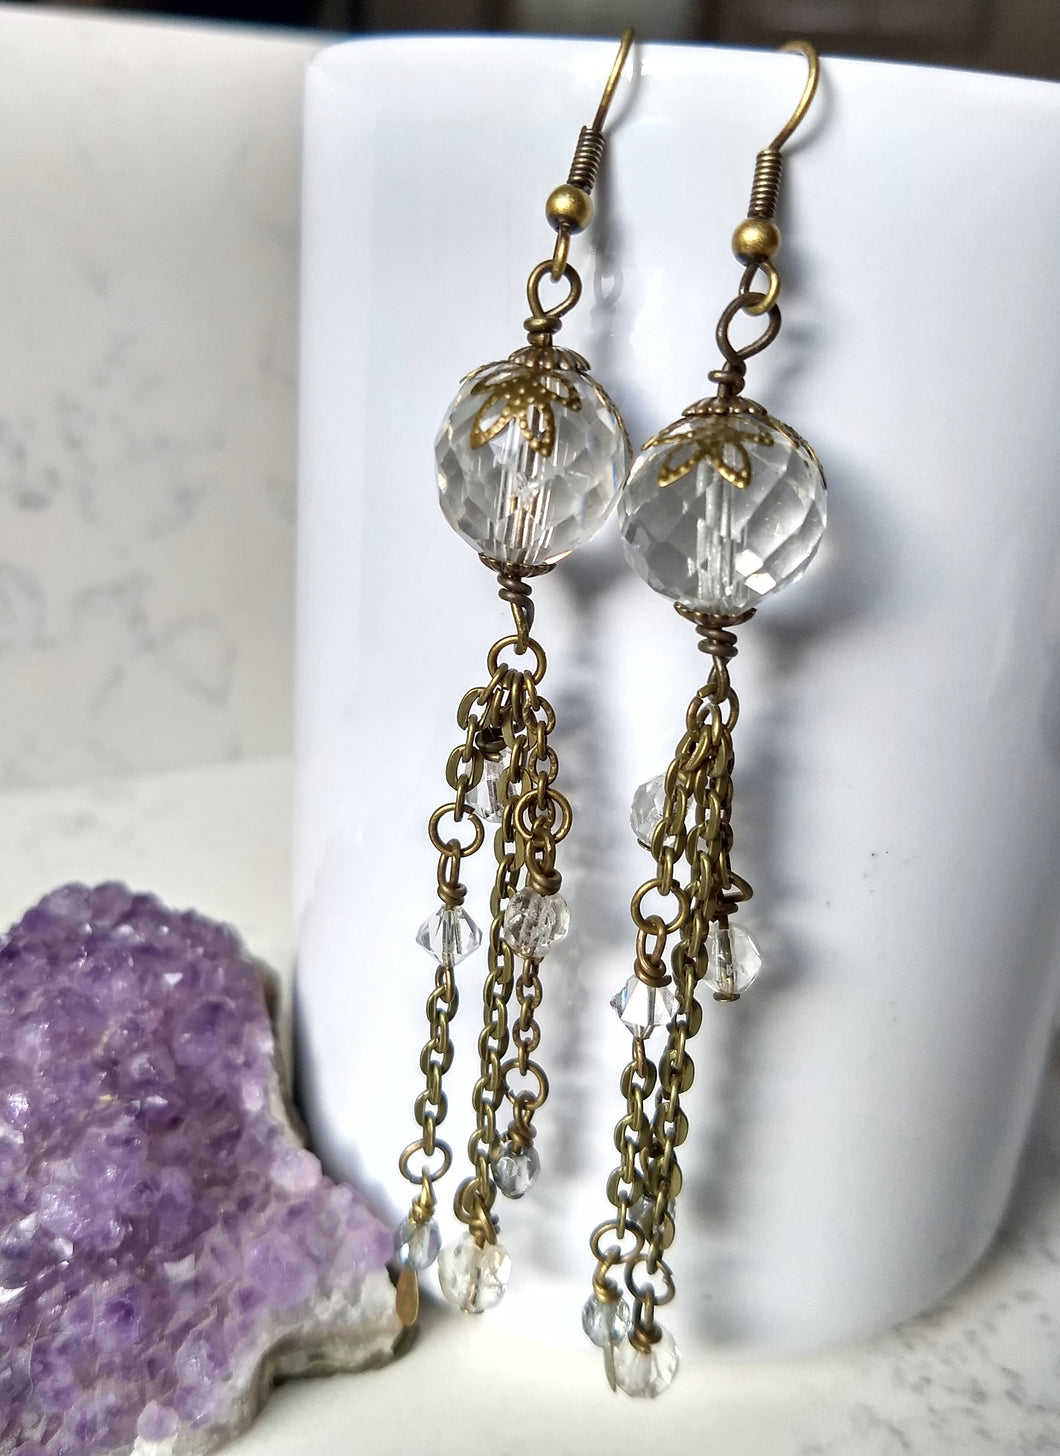 Whiter Shade of Pale - vintage crystal assemblage earrings - Minxes' Trinkets